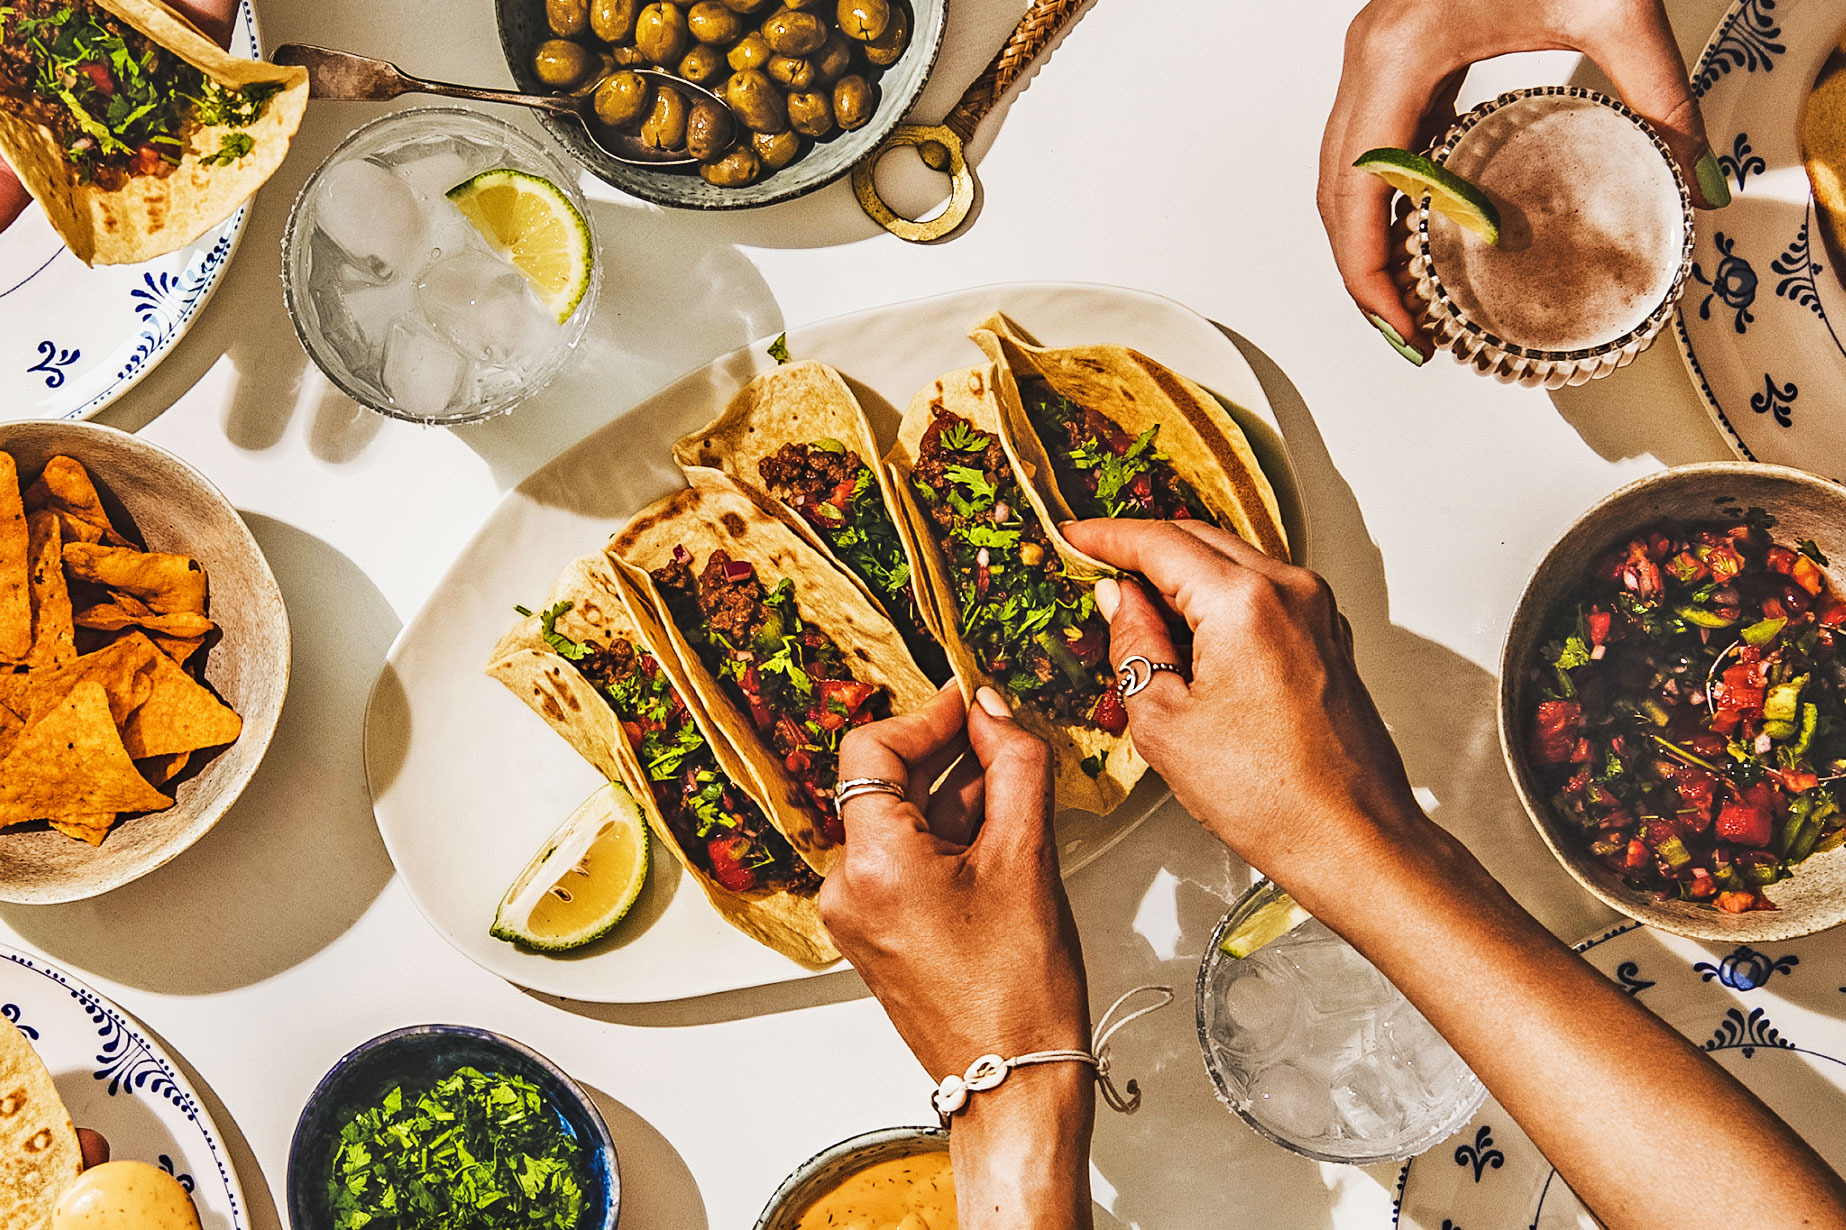 Flat-lay of beef tacos, tomato salsa, tortillas, beer, nachos and peoples hands over white table, top view